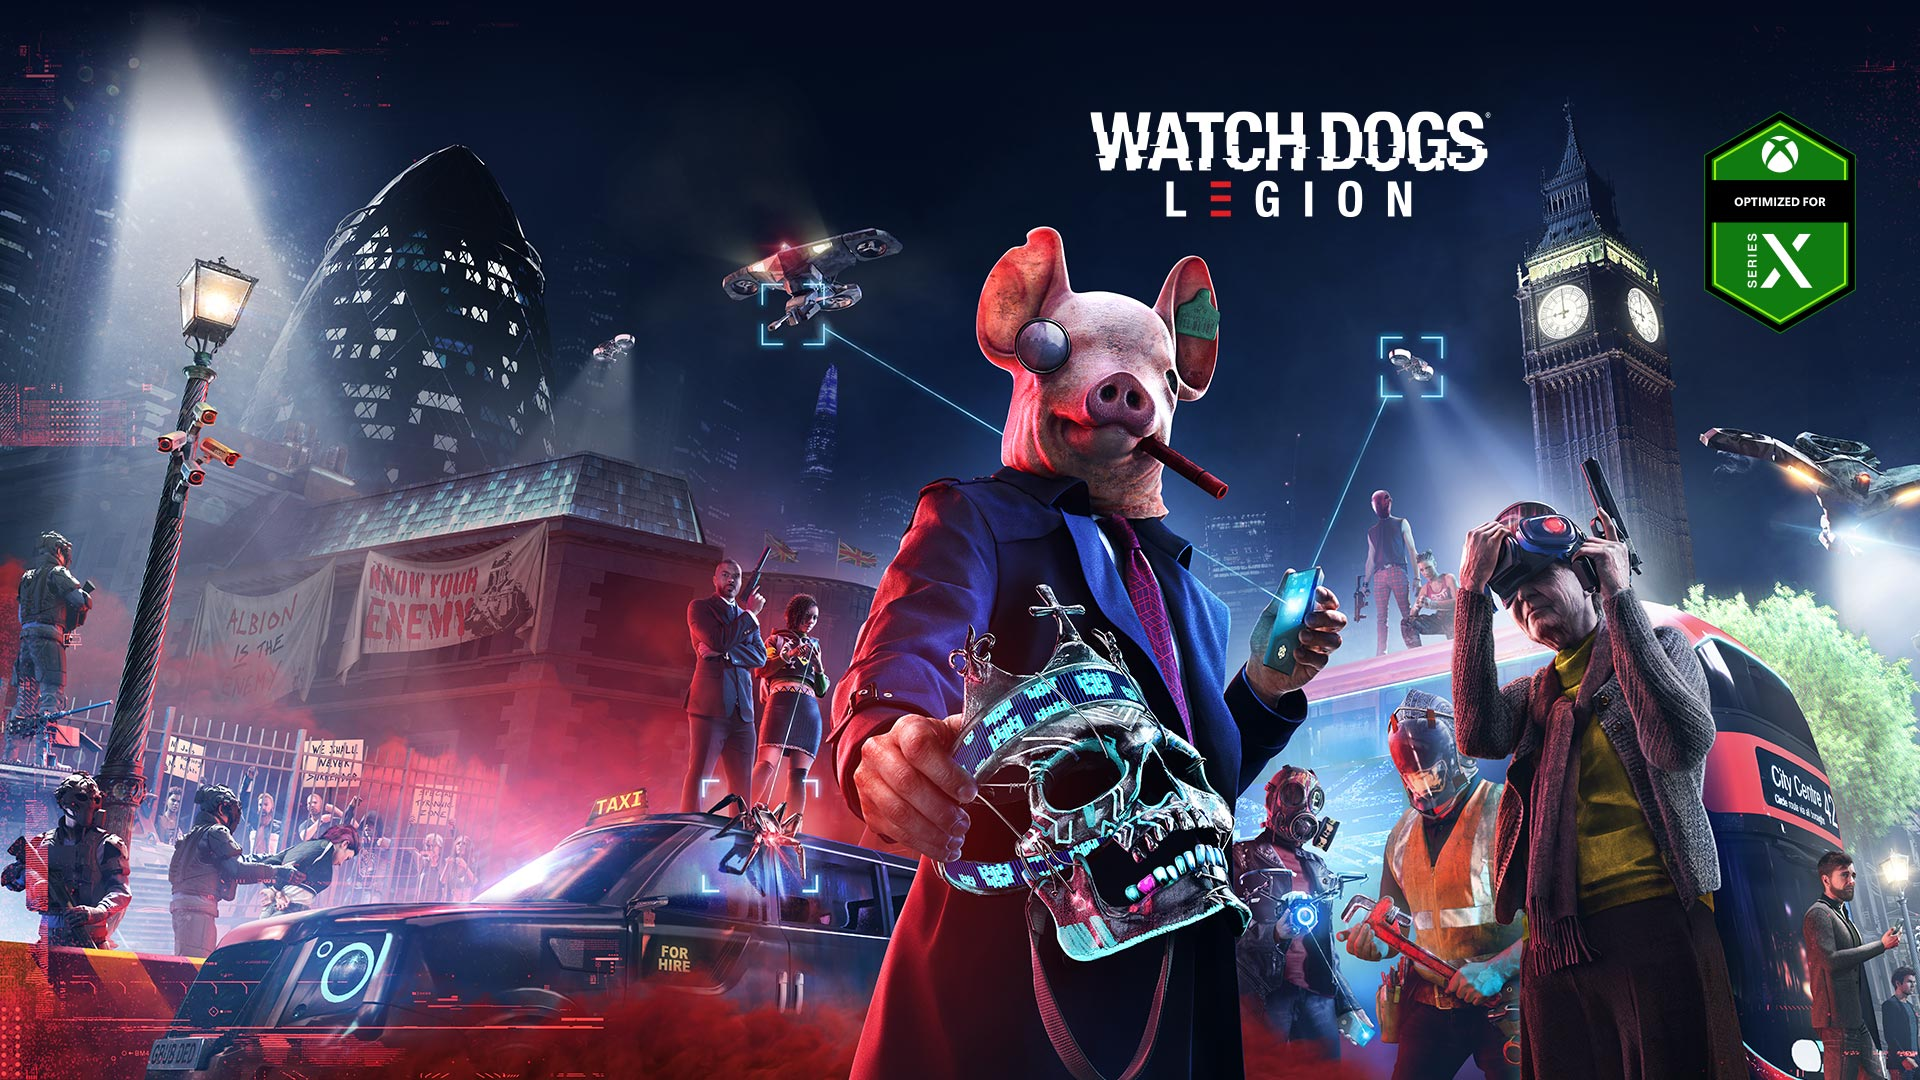 Optimized for Series X badge, Watch Dogs Legion logo, person in a pig mask holding a skull, two drones, Big Ben, and several other characters with weapons